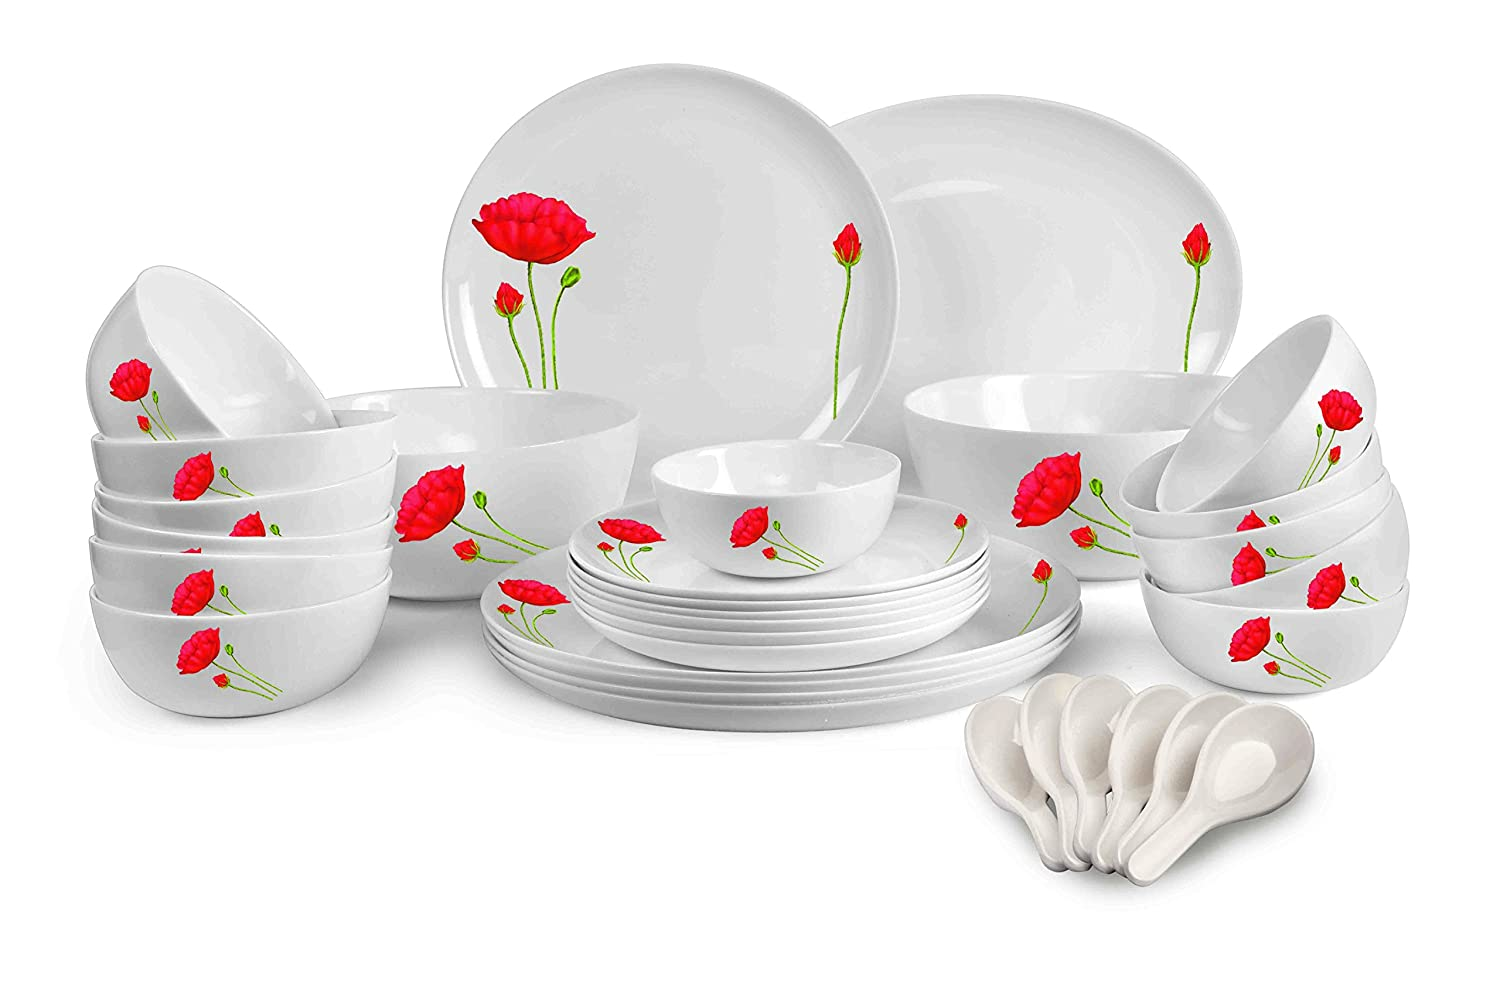 Cello Monarch Red Poppy Opalware Dinner Set, 33-Pieces, White